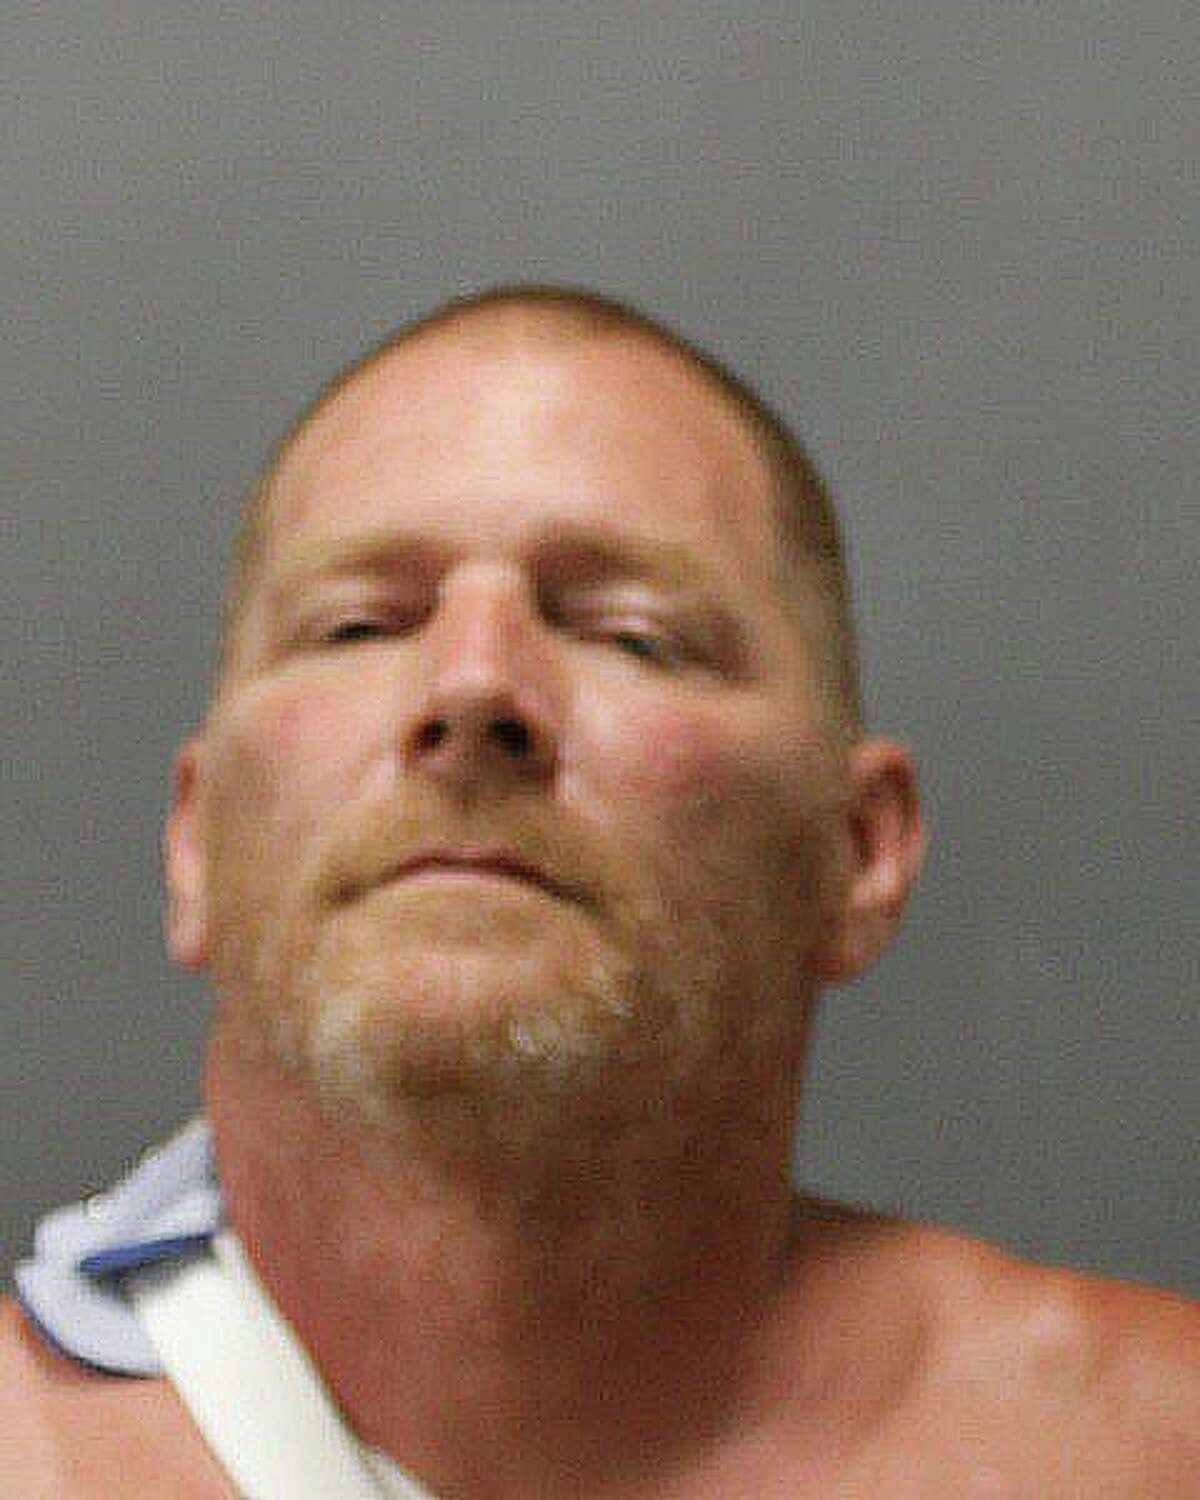 Thomas LaPrade, 53, was charged with disorderly conduct, interfering with an officer, three counts of assault on an officer, second-degree threatening, second-degree breach of peace and second-degree criminal mischief.